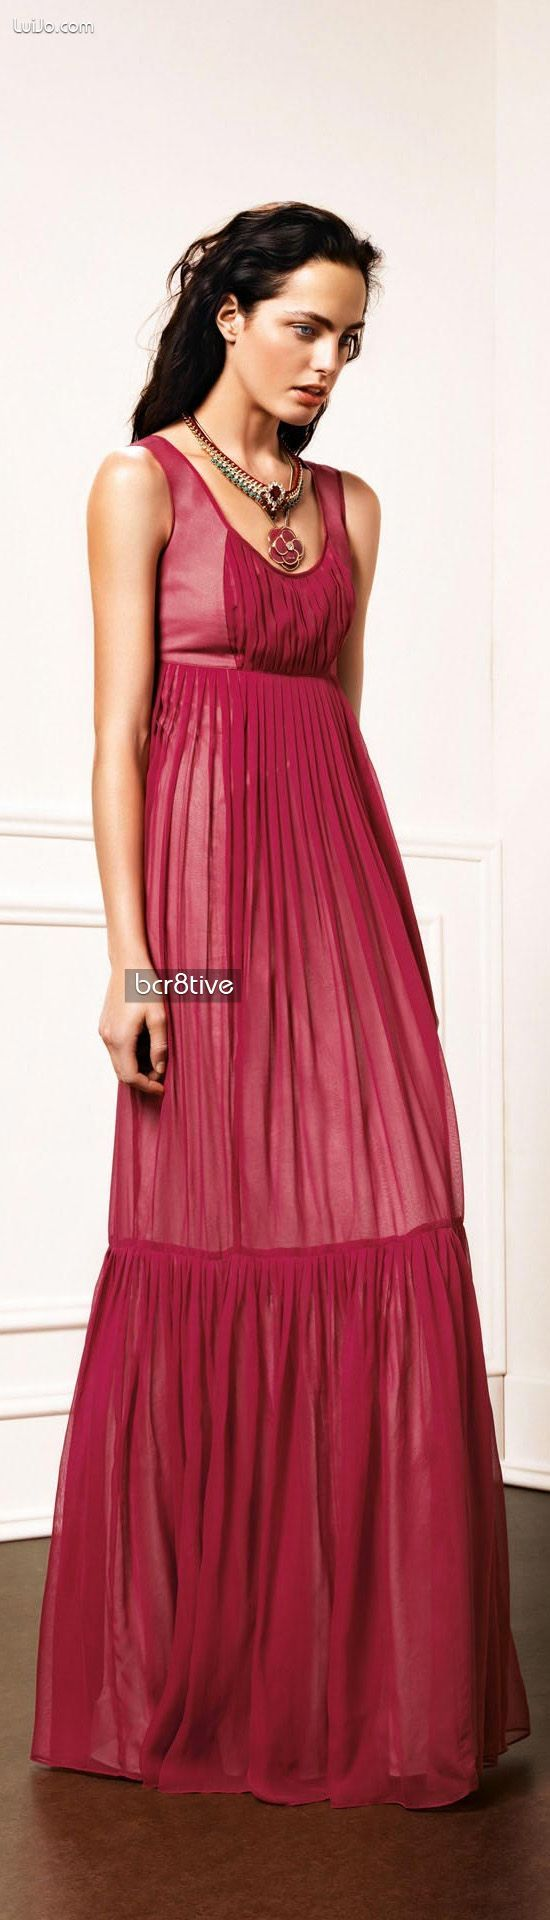 Occasion Dresses Occasion Homecoming prom Dress